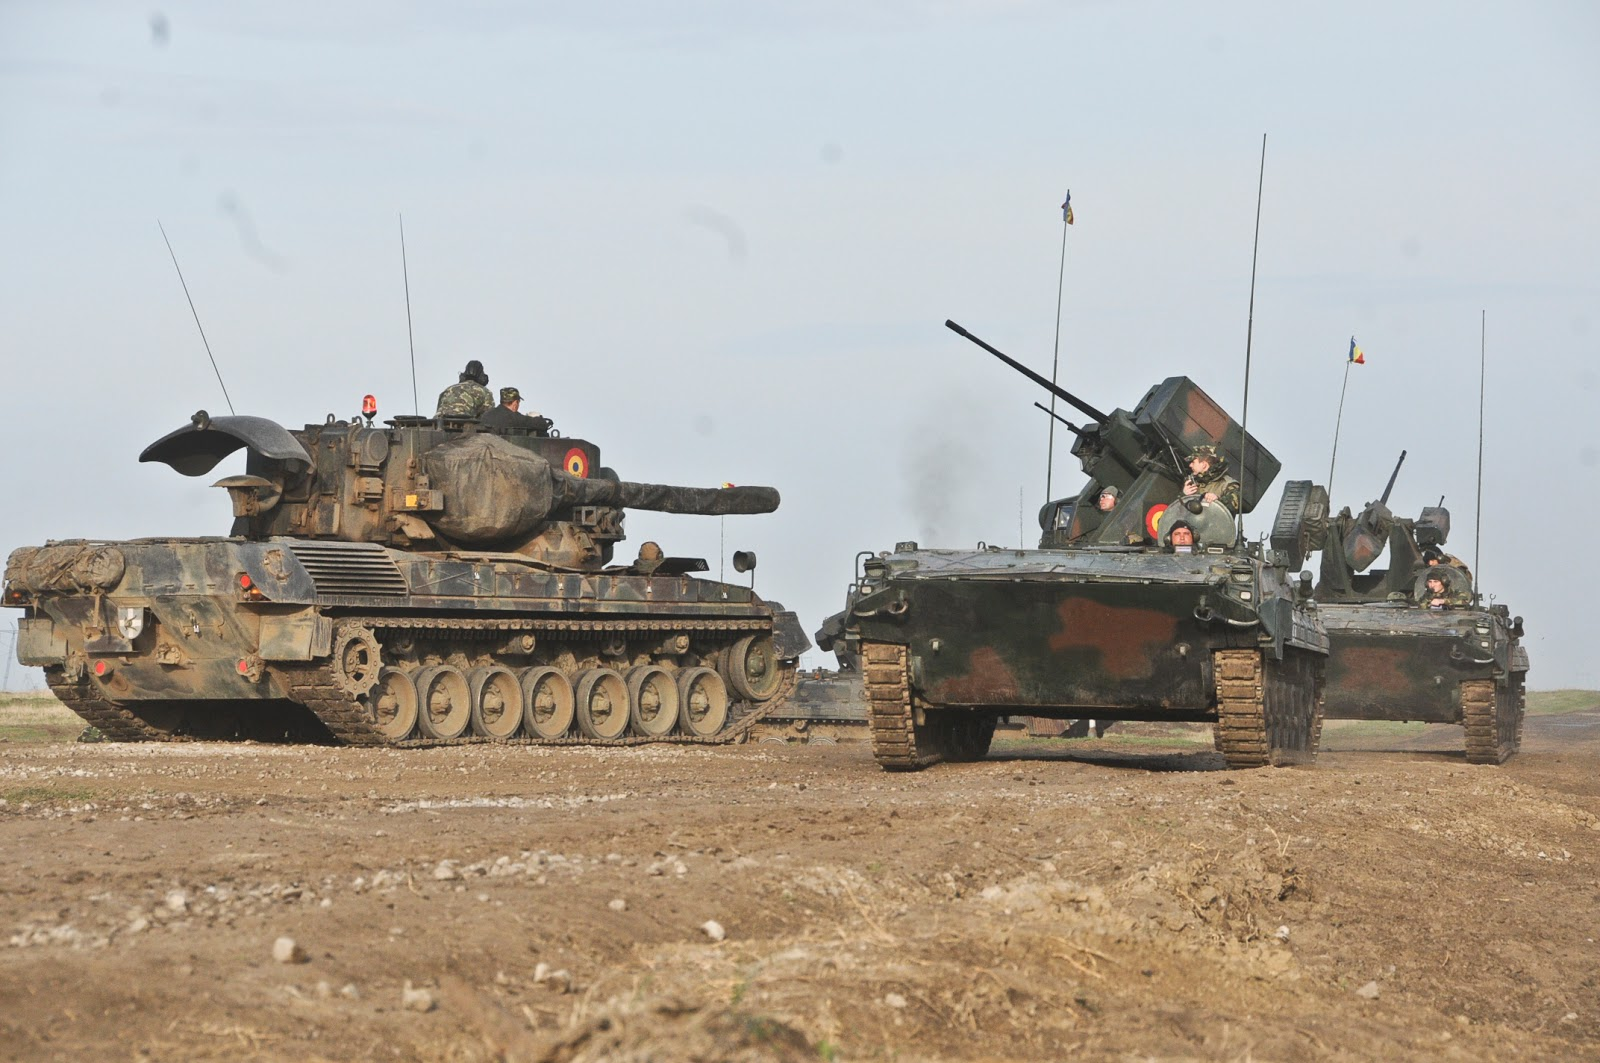 SNAFU!: Blast from the past. Rooikat 8x8 wheeled fighting vehicle ...